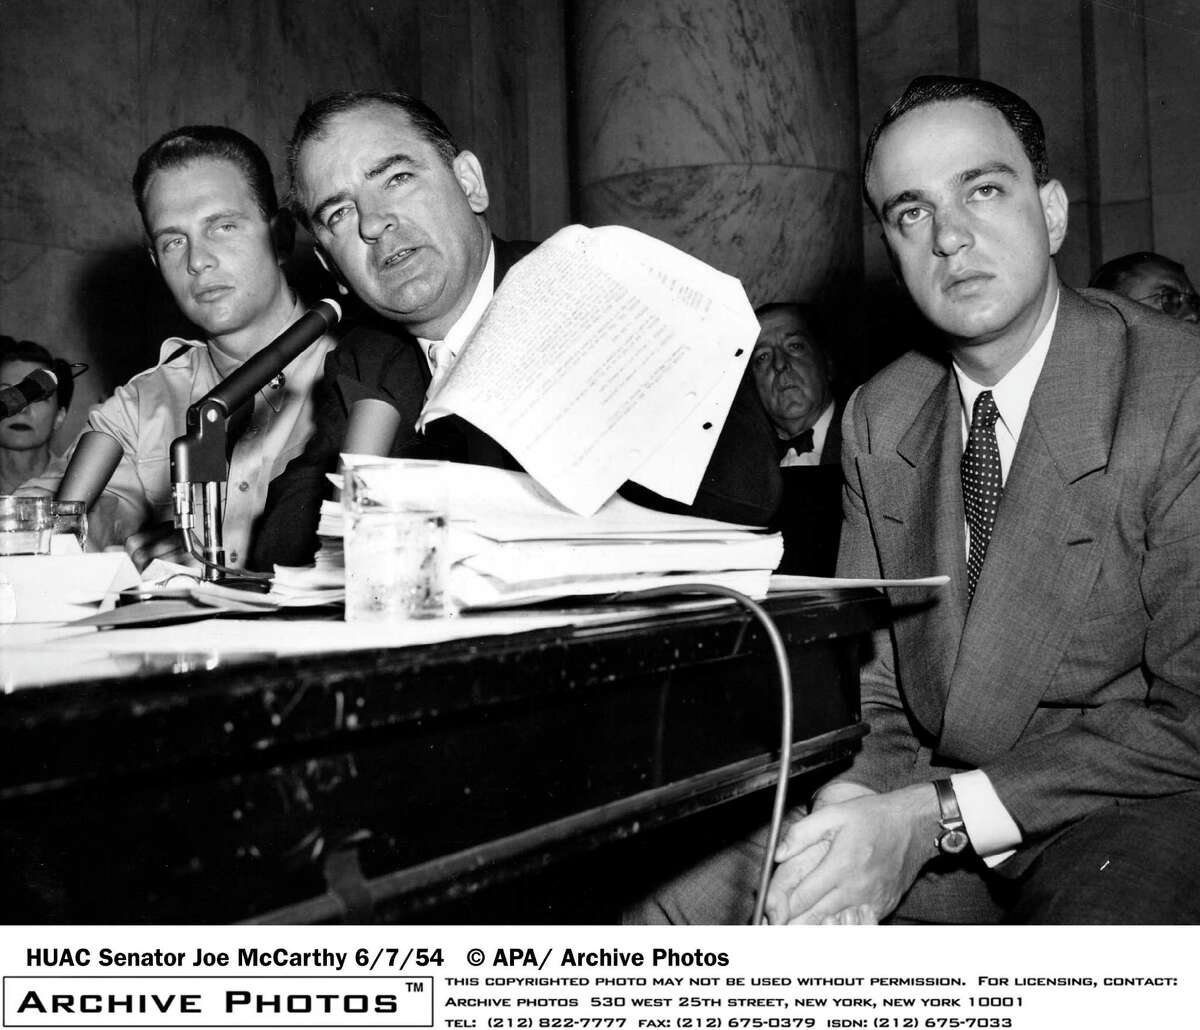 Roy Cohn (right) was Senator Joe McCarthy's (center) chief counsel. Cohn died in 1986 of complications from AIDS.